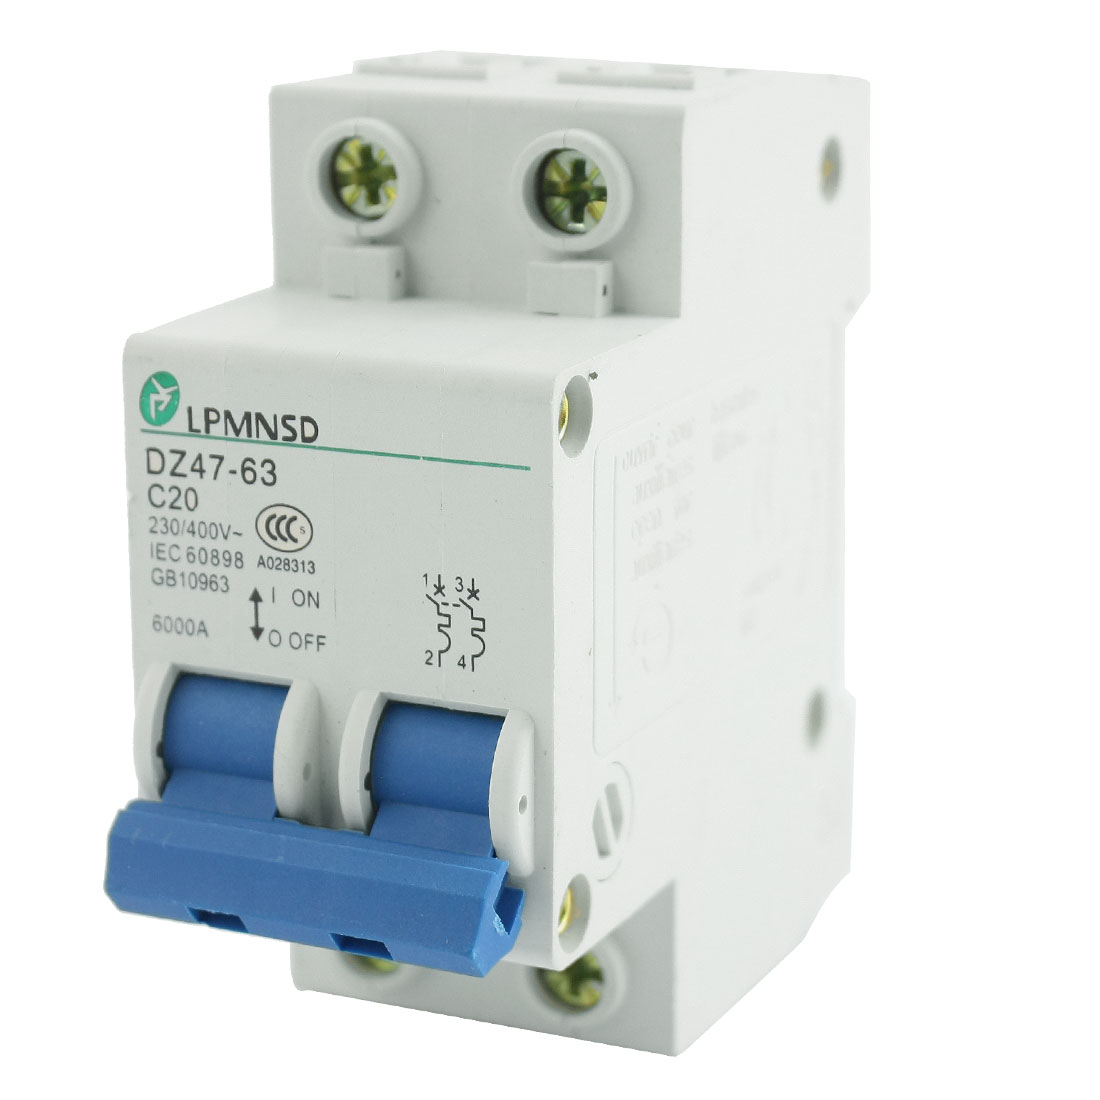 DZ47-63 35mm DIN Rail Mount 2 Pole On/Off Switch Overload Protector Mini Circuit Breaker AC 230V 400V 20A 6000A